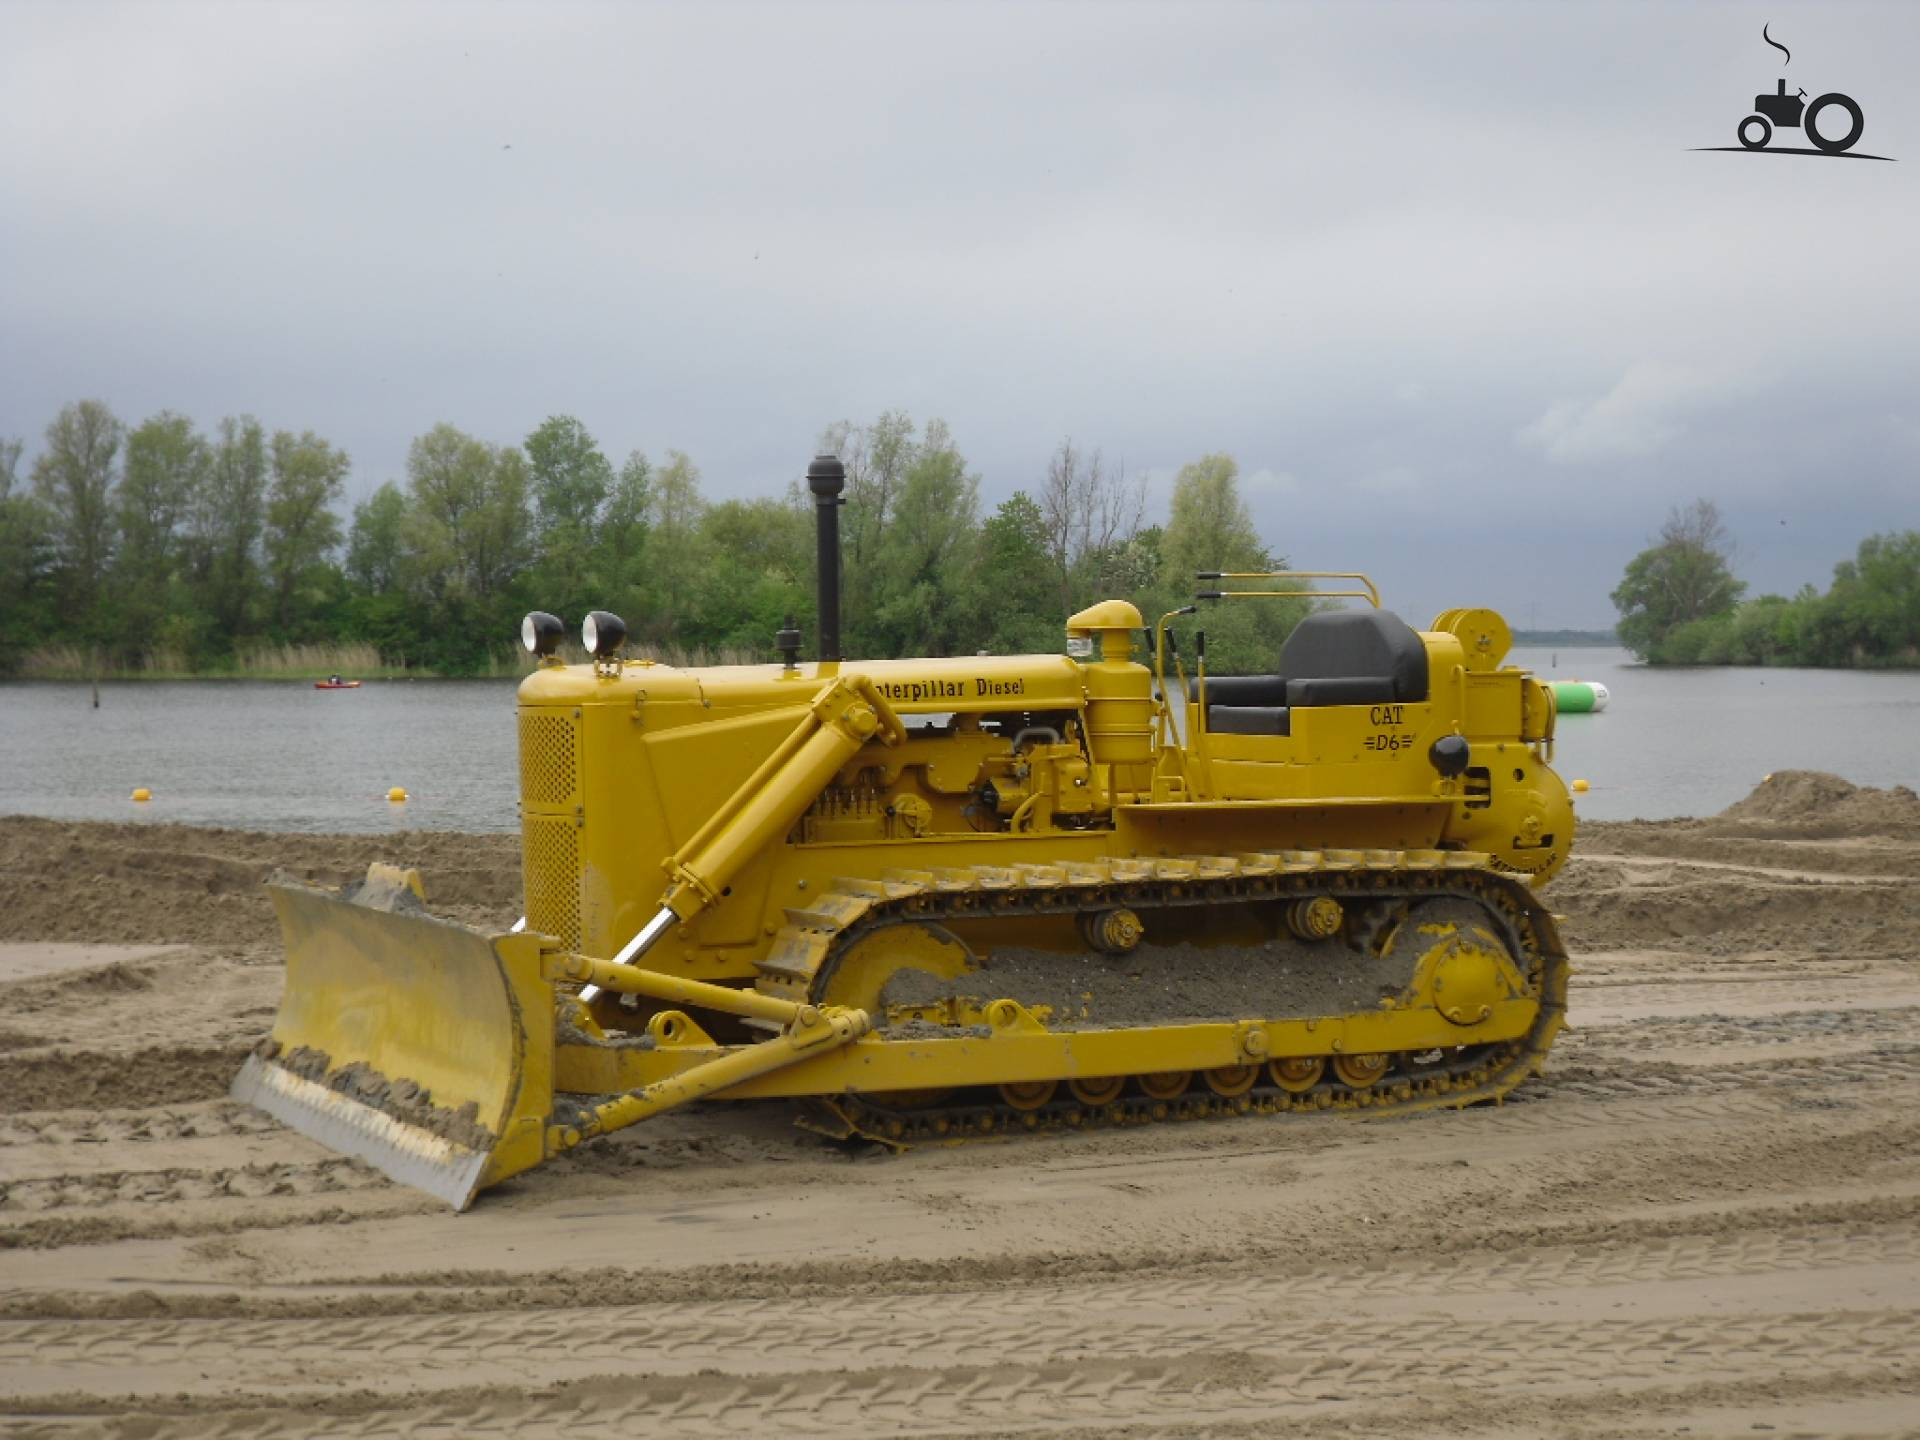 Caterpillar d6 photo - 10